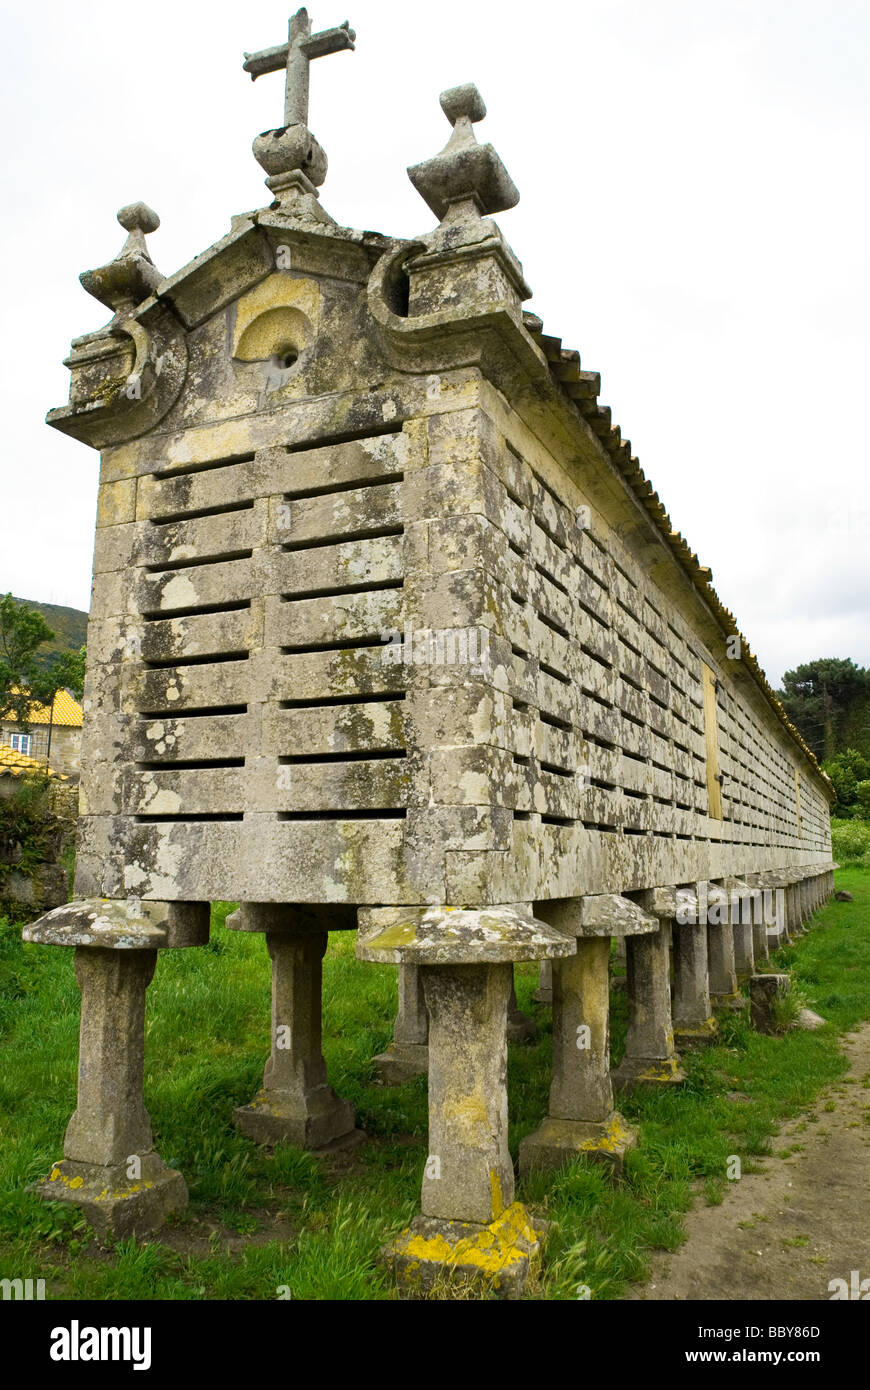 Horreo or traditional granary in Galicia , northwest Spain - Stock Image